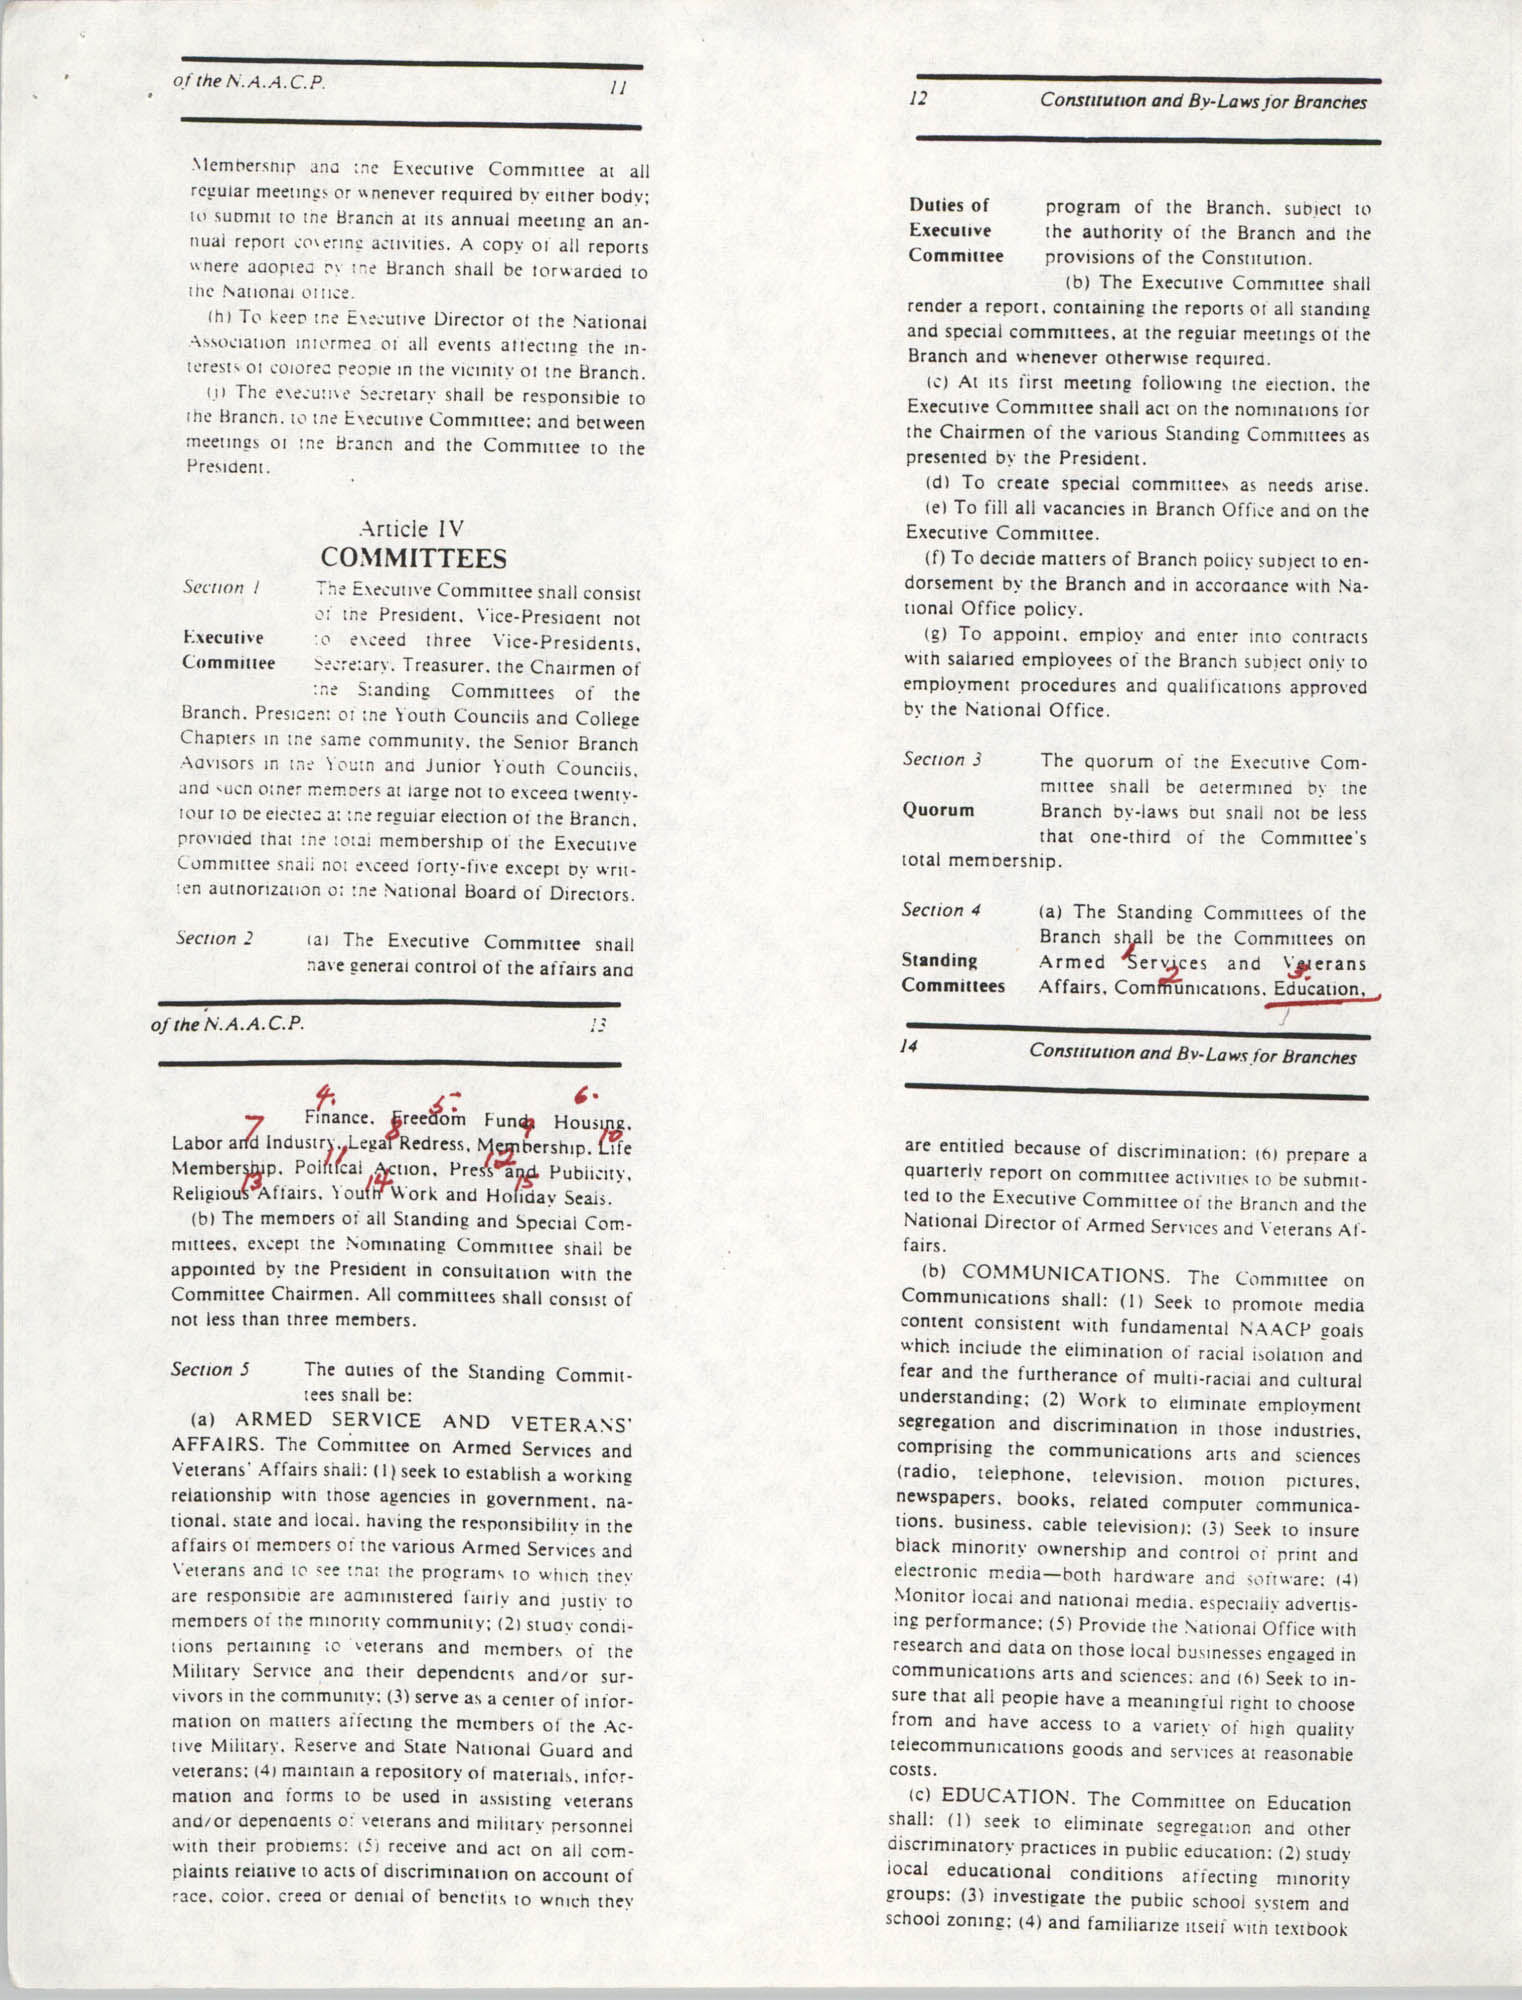 Constitution and By-Laws for Branches of the NAACP, May 1988, Pages 11-14